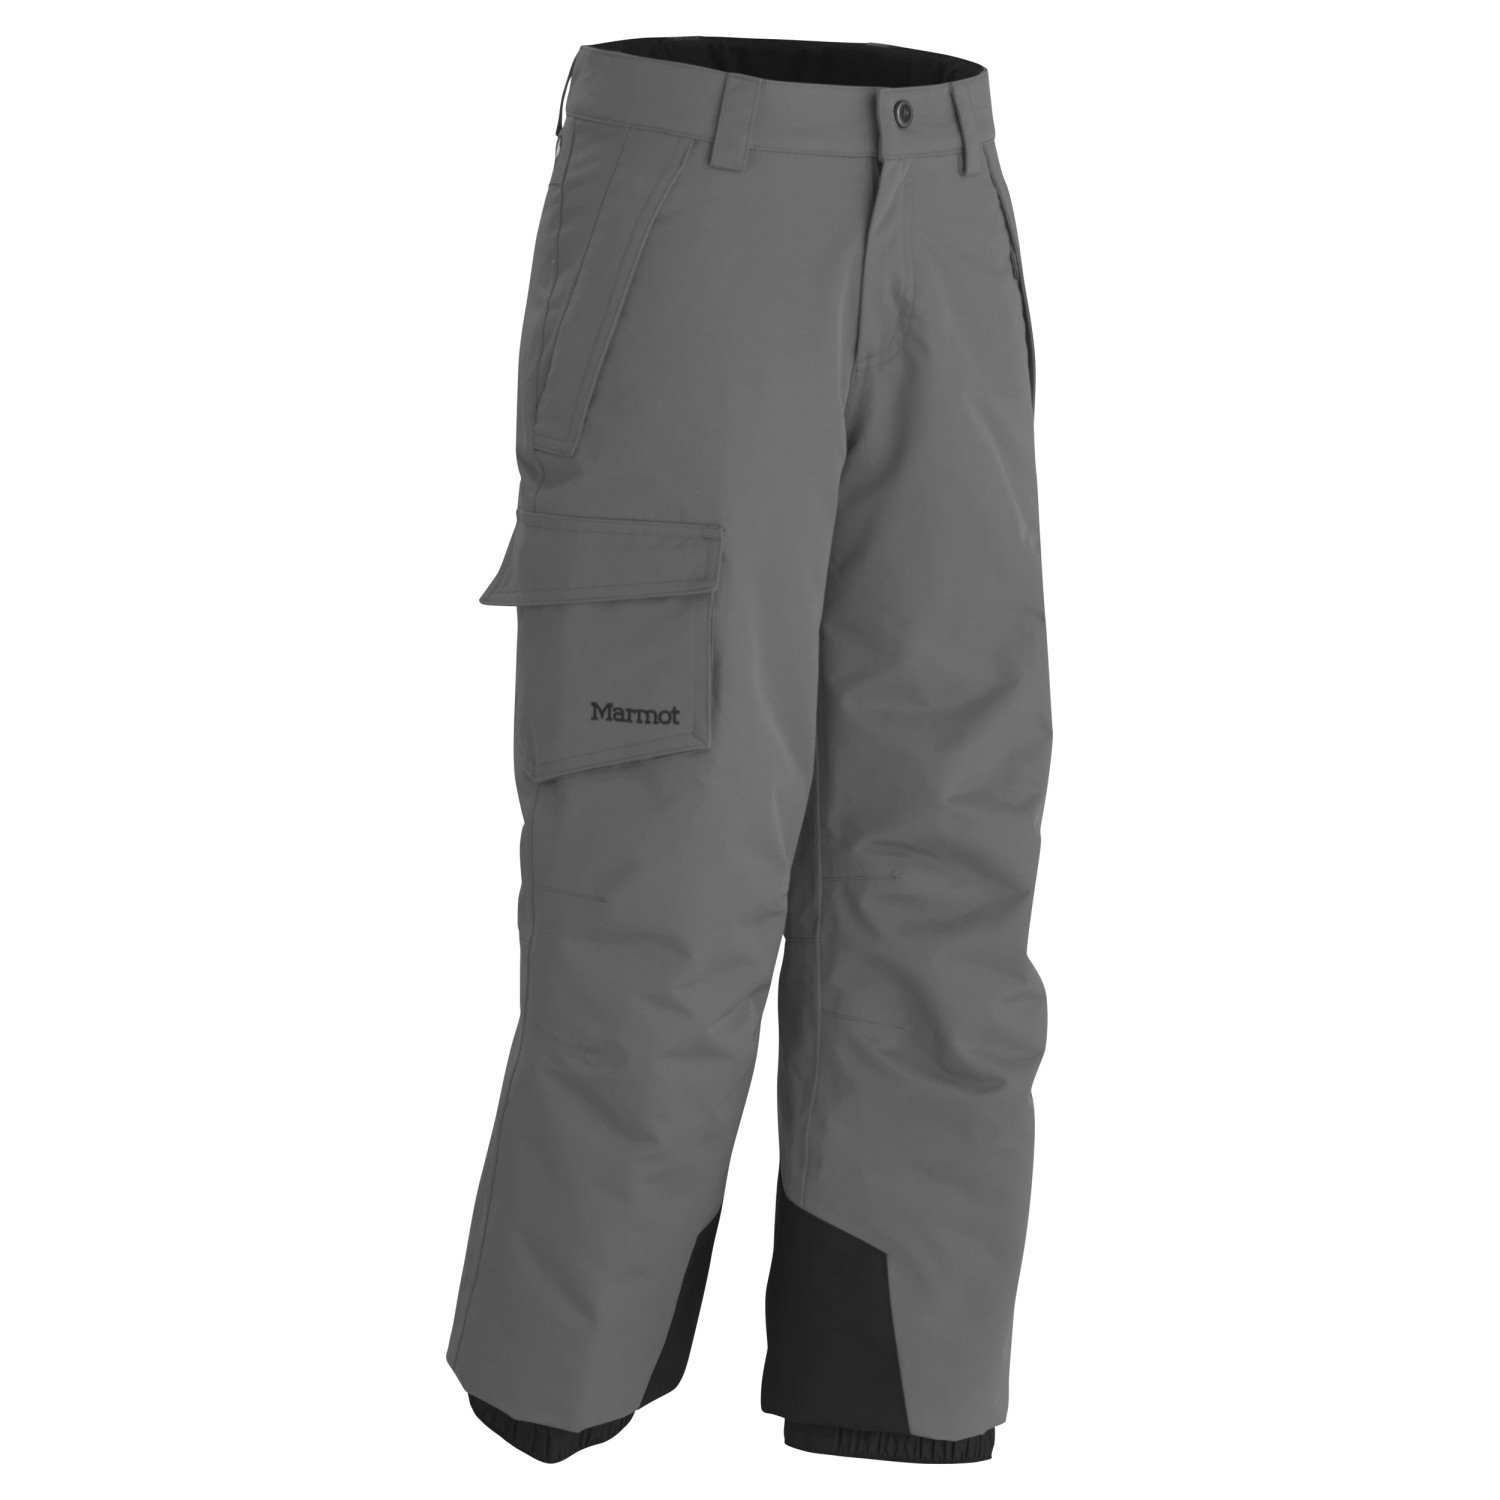 Marmot Kinder Skihose Boy's Motion Insulated bestellen